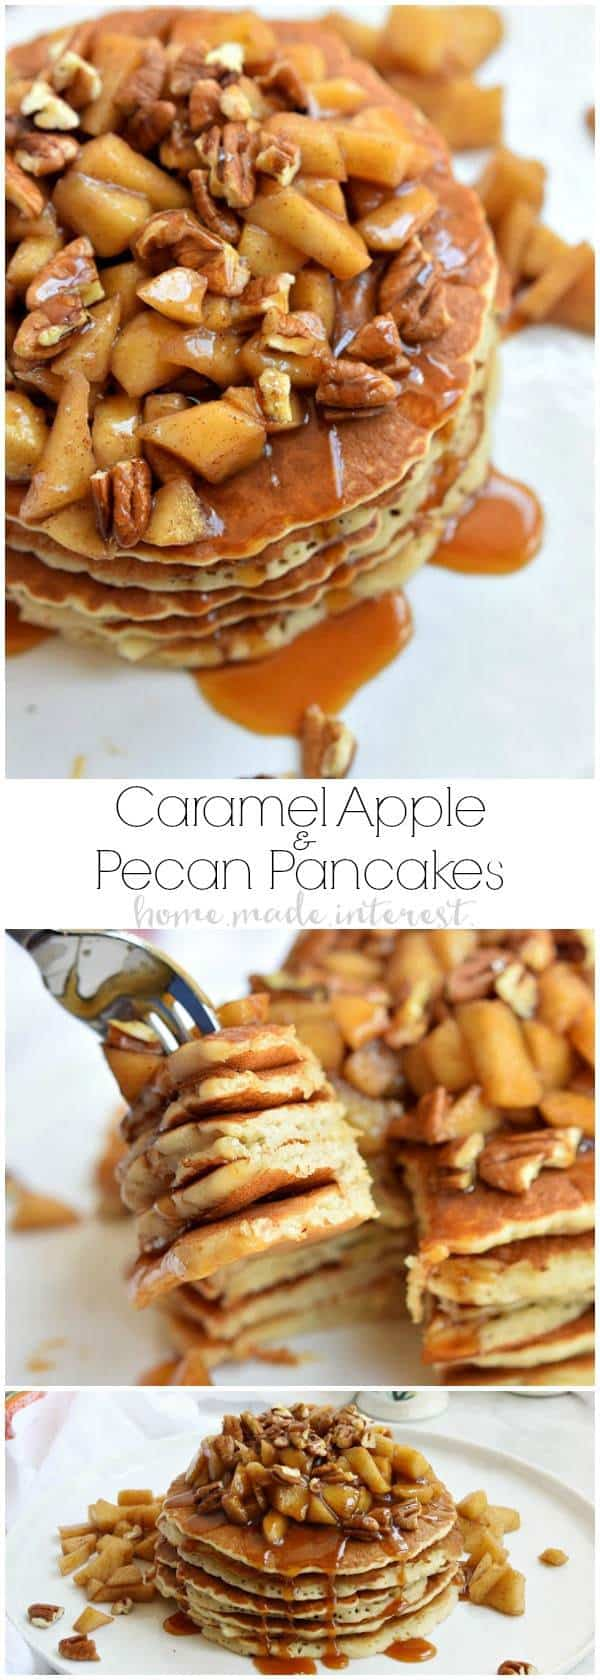 TheseCaramel Apple Pecan Pancakesare a fall breakfast recipe made with light and fluffy pancakes topped with caramel sauce, baked apples, and pecans.